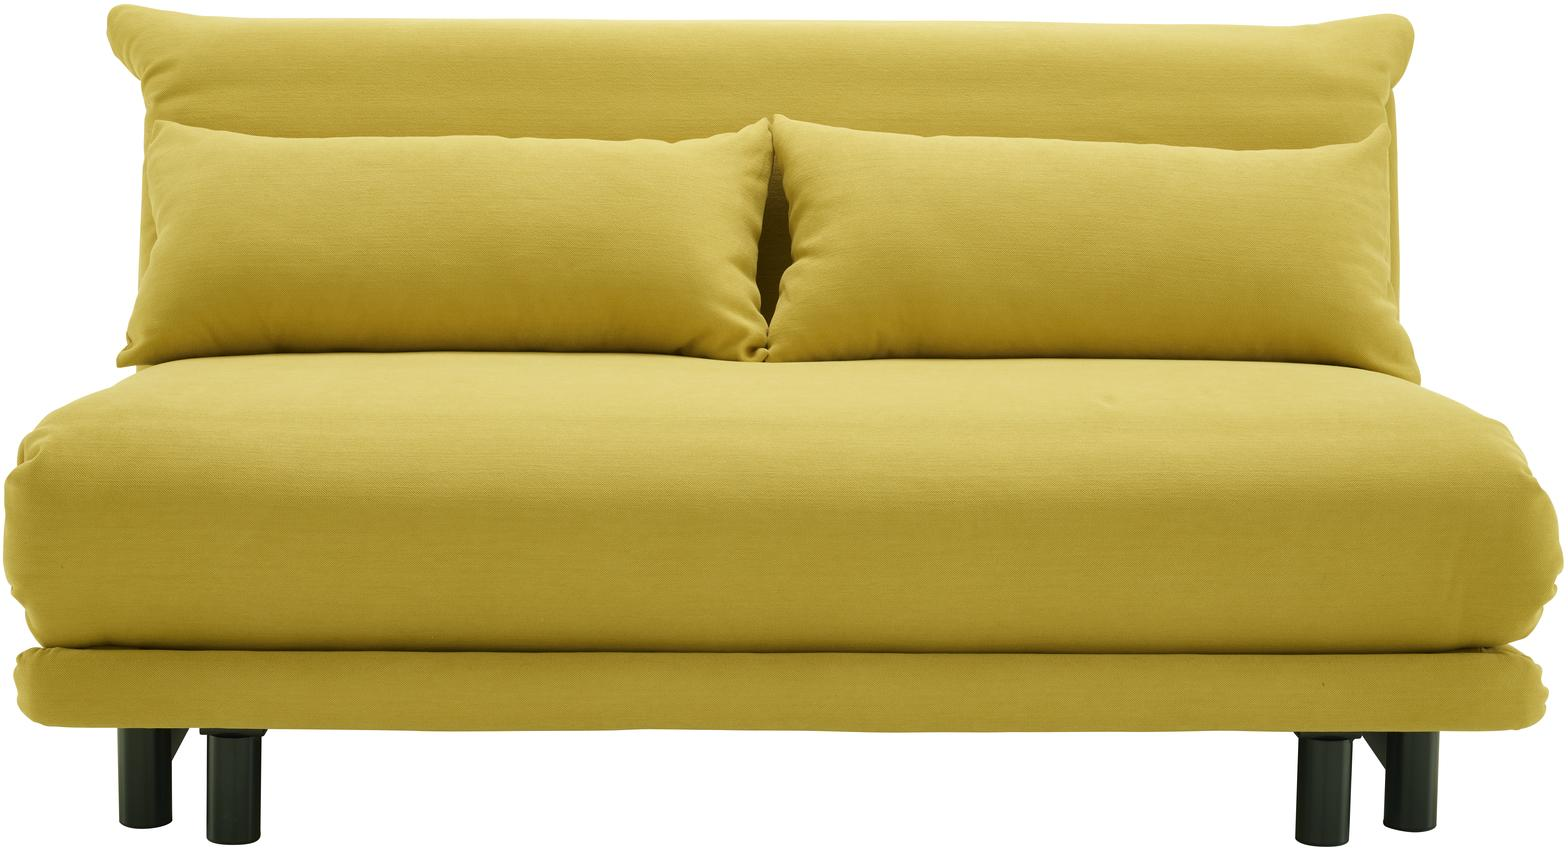 Ligne Roset Multy Slaapbank.Multy Sofa Beds From Designer Claude Brisson Ligne Roset